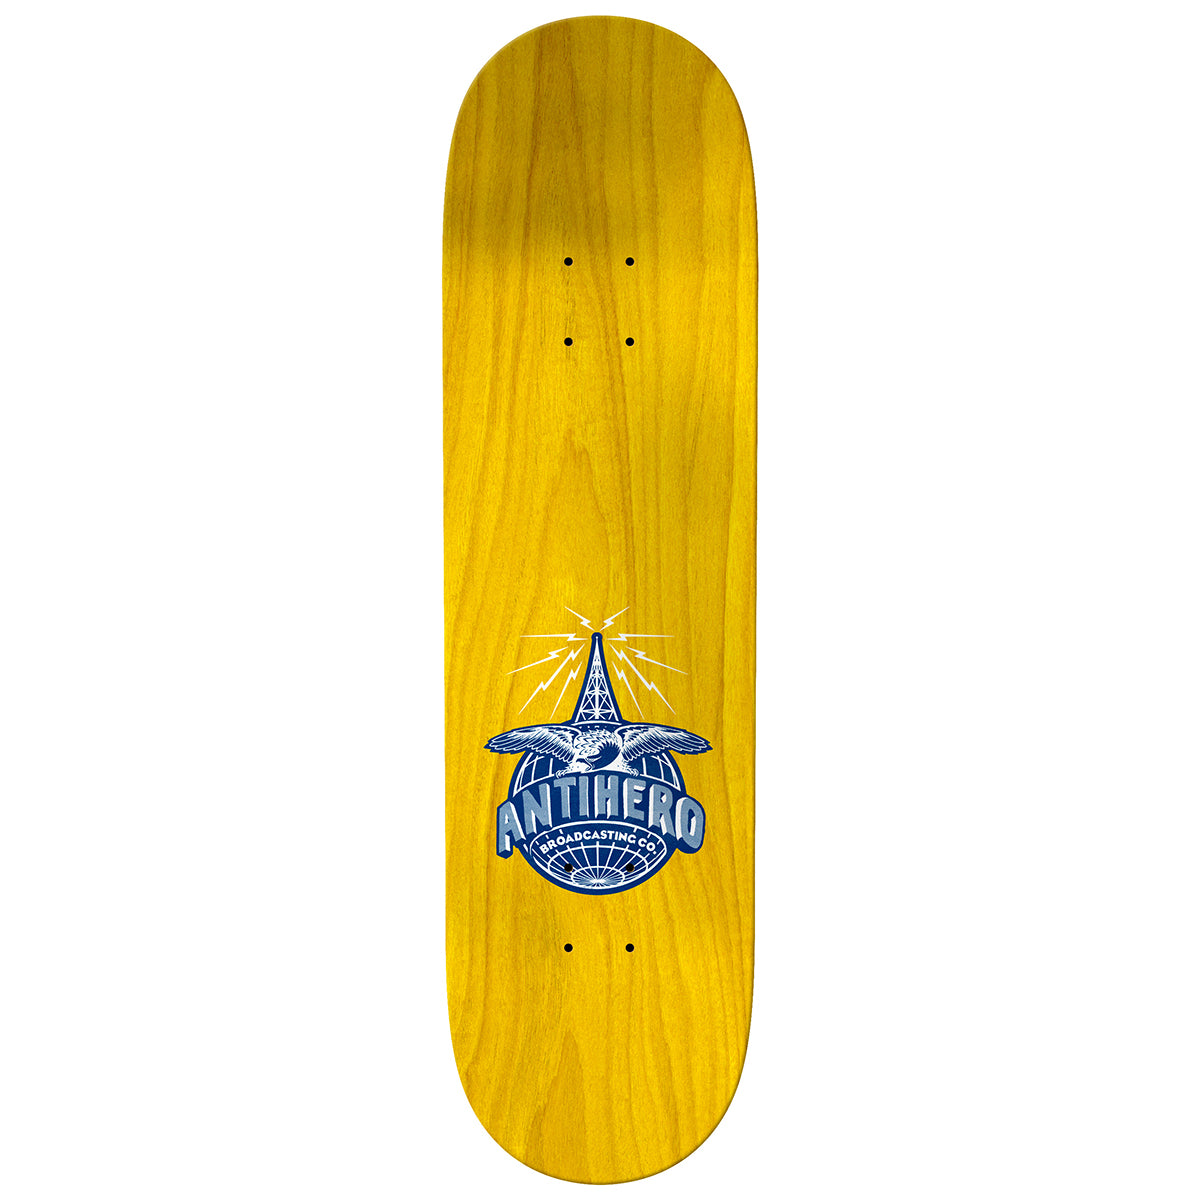 Anti Hero Taylor Broadcasting Deck 8.25""